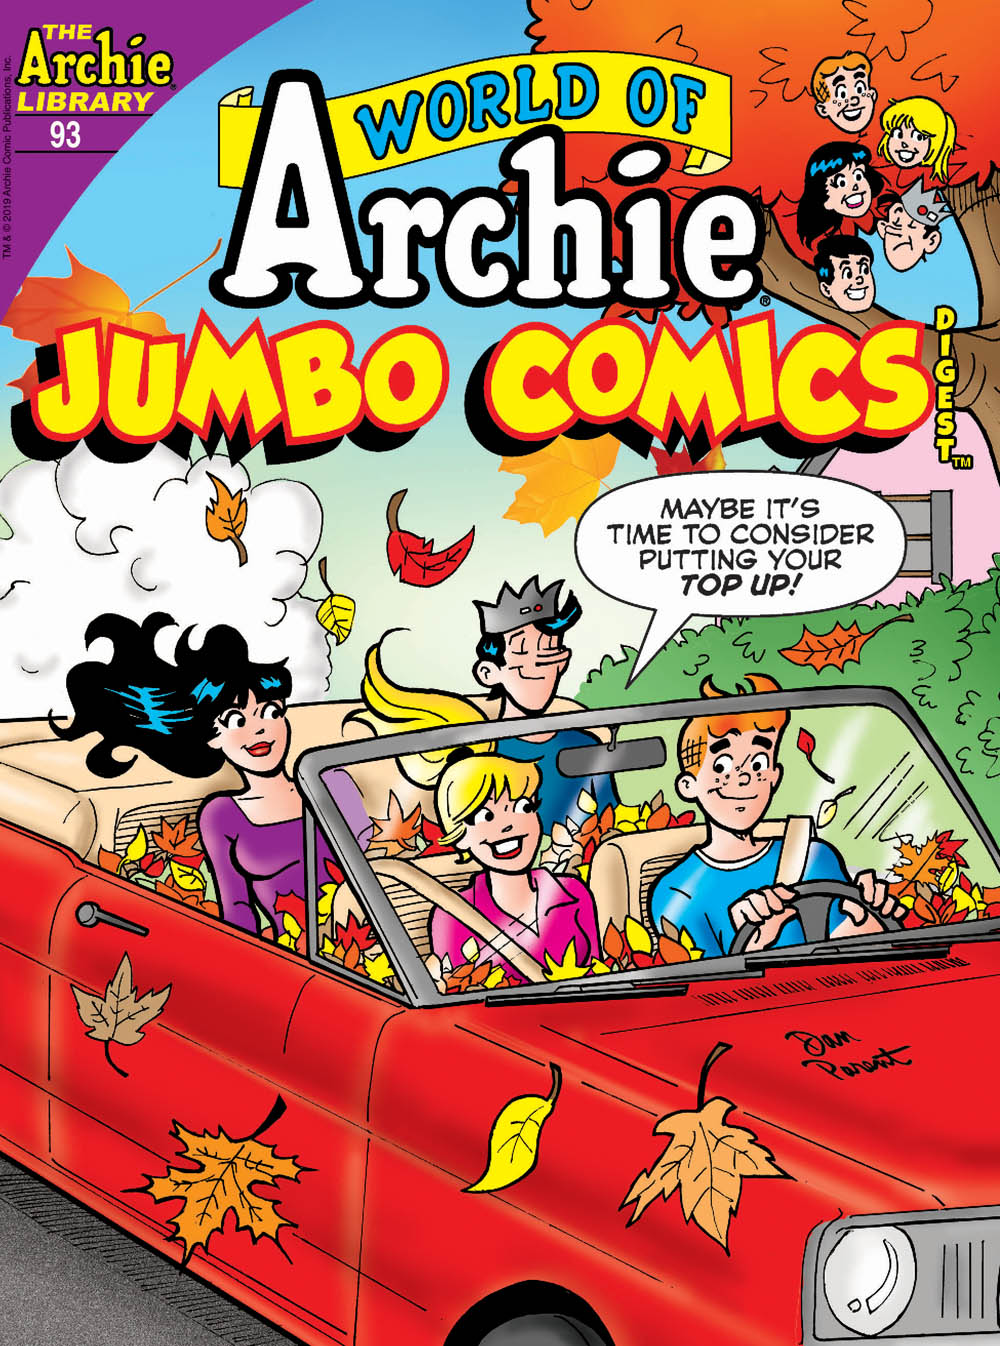 World-of-Archie-Digest-93.jpg